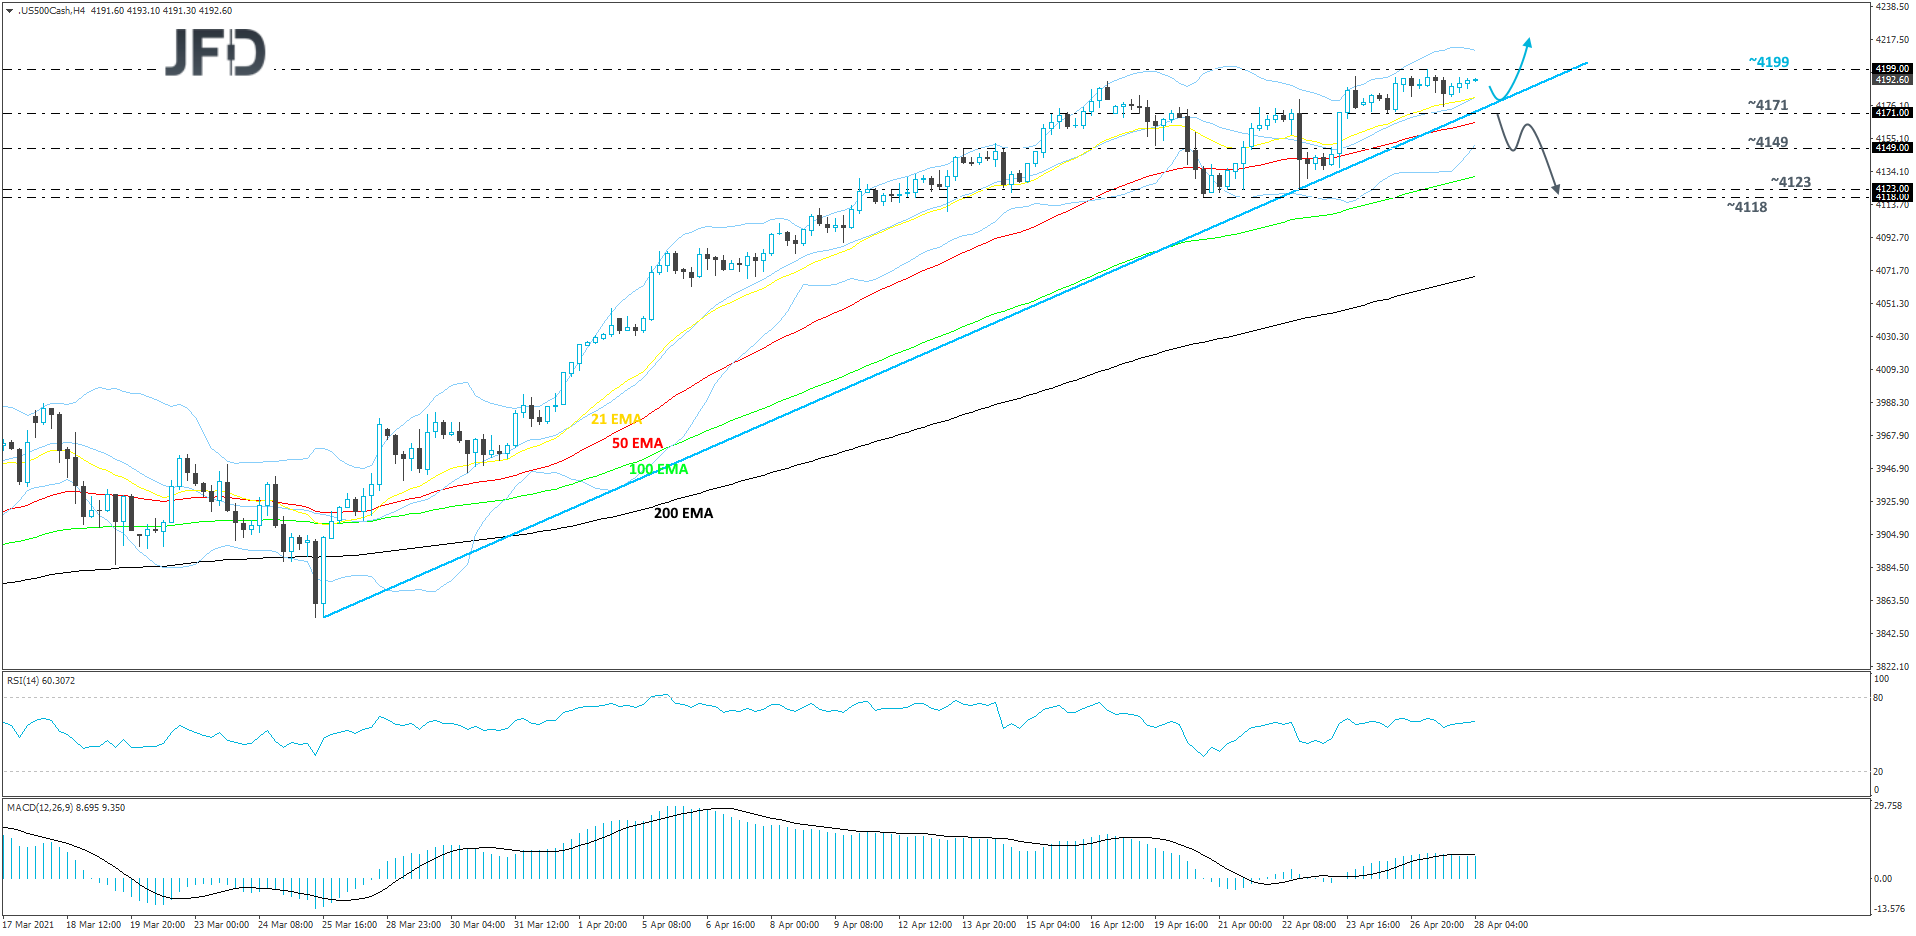 S&P 500 cash index 4-hour chart technical analysis